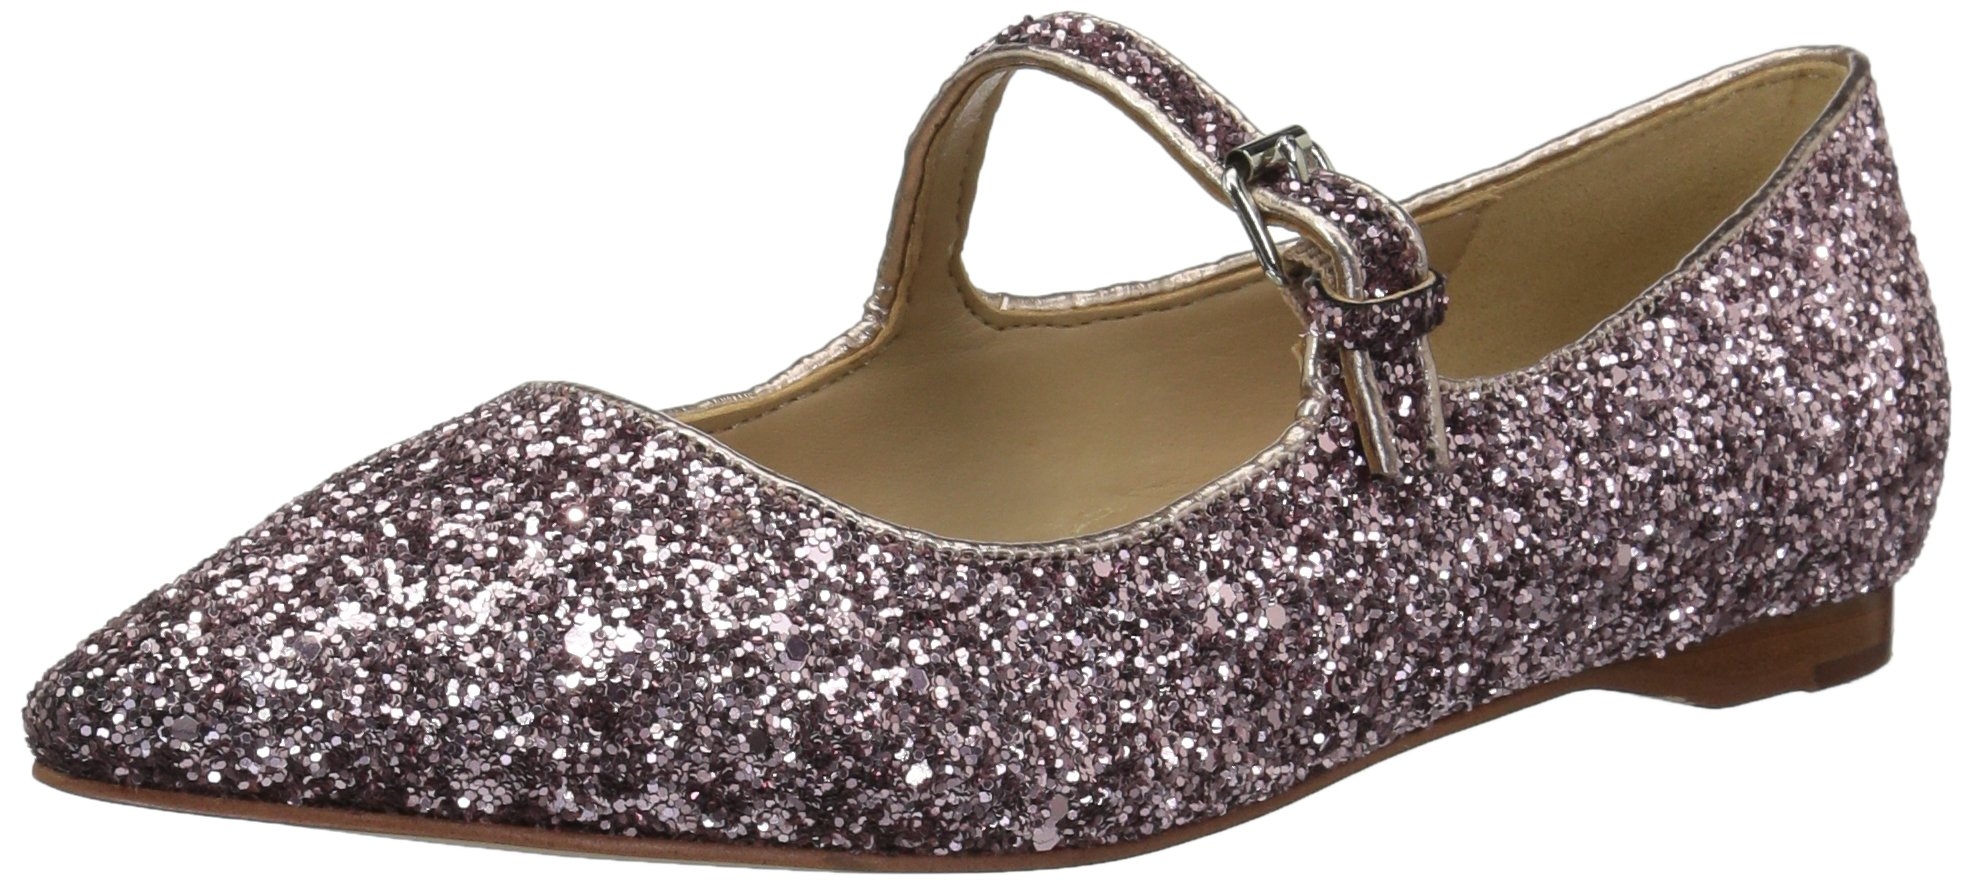 The Fix Women's Estrella Mary Jane Glitter Ballet Pointed Toe Flat, Pink, 8.5 B US